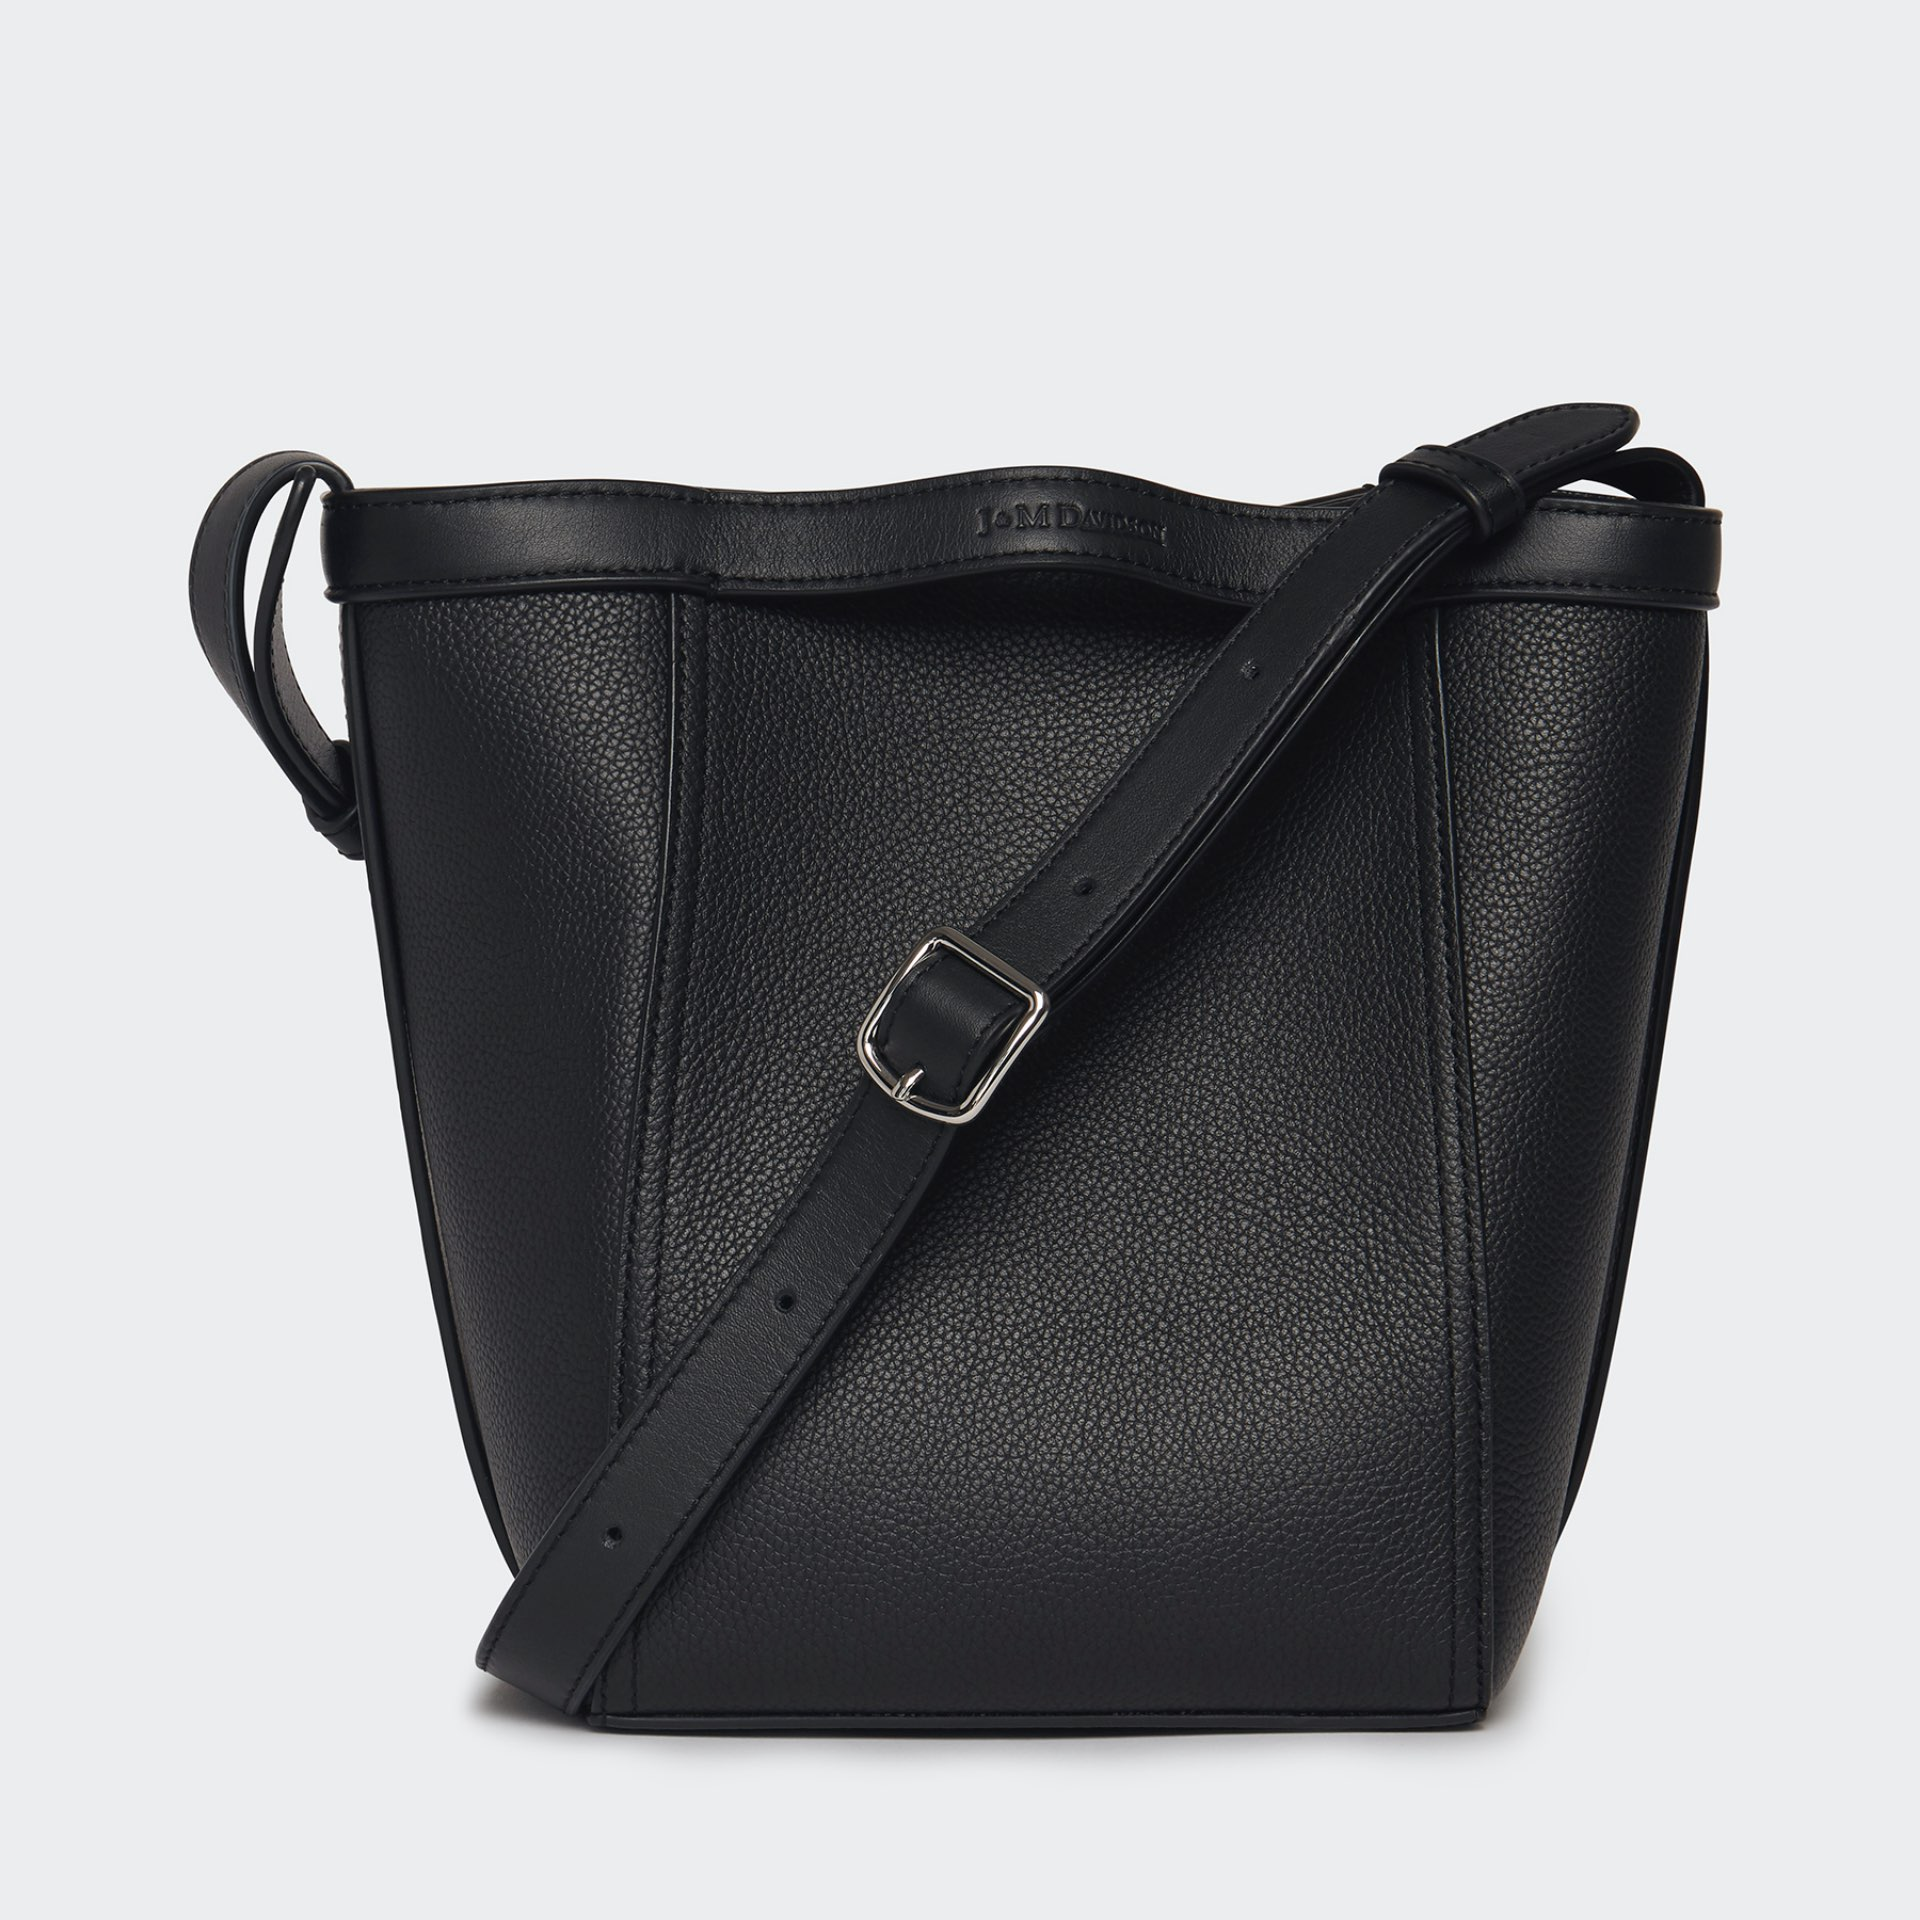 J&M Leather bag in black with thin belt